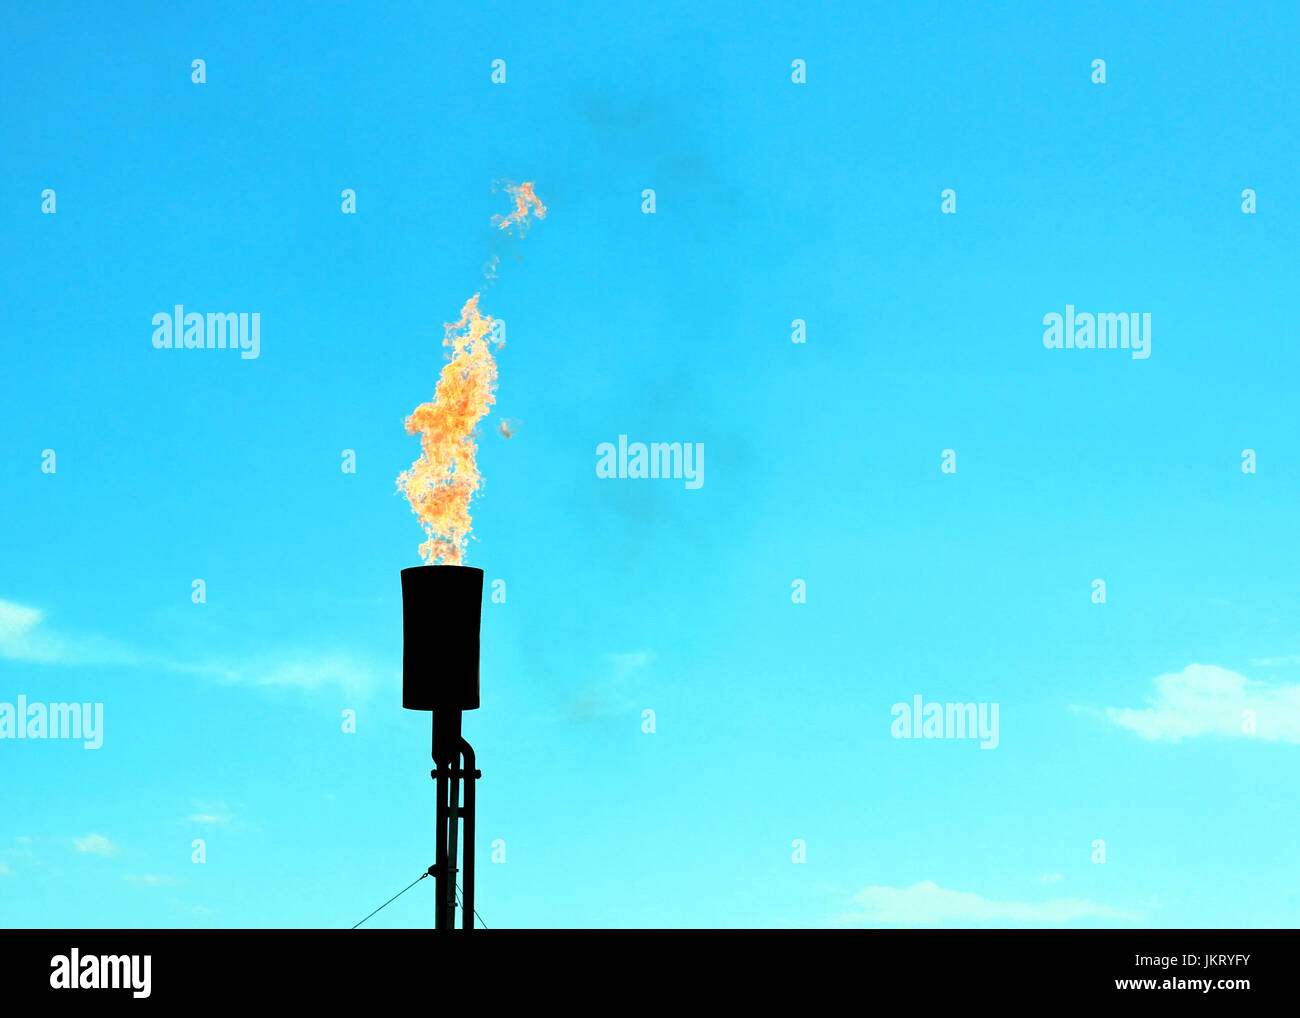 Flare Stack Stock Photos & Flare Stack Stock Images - Alamy